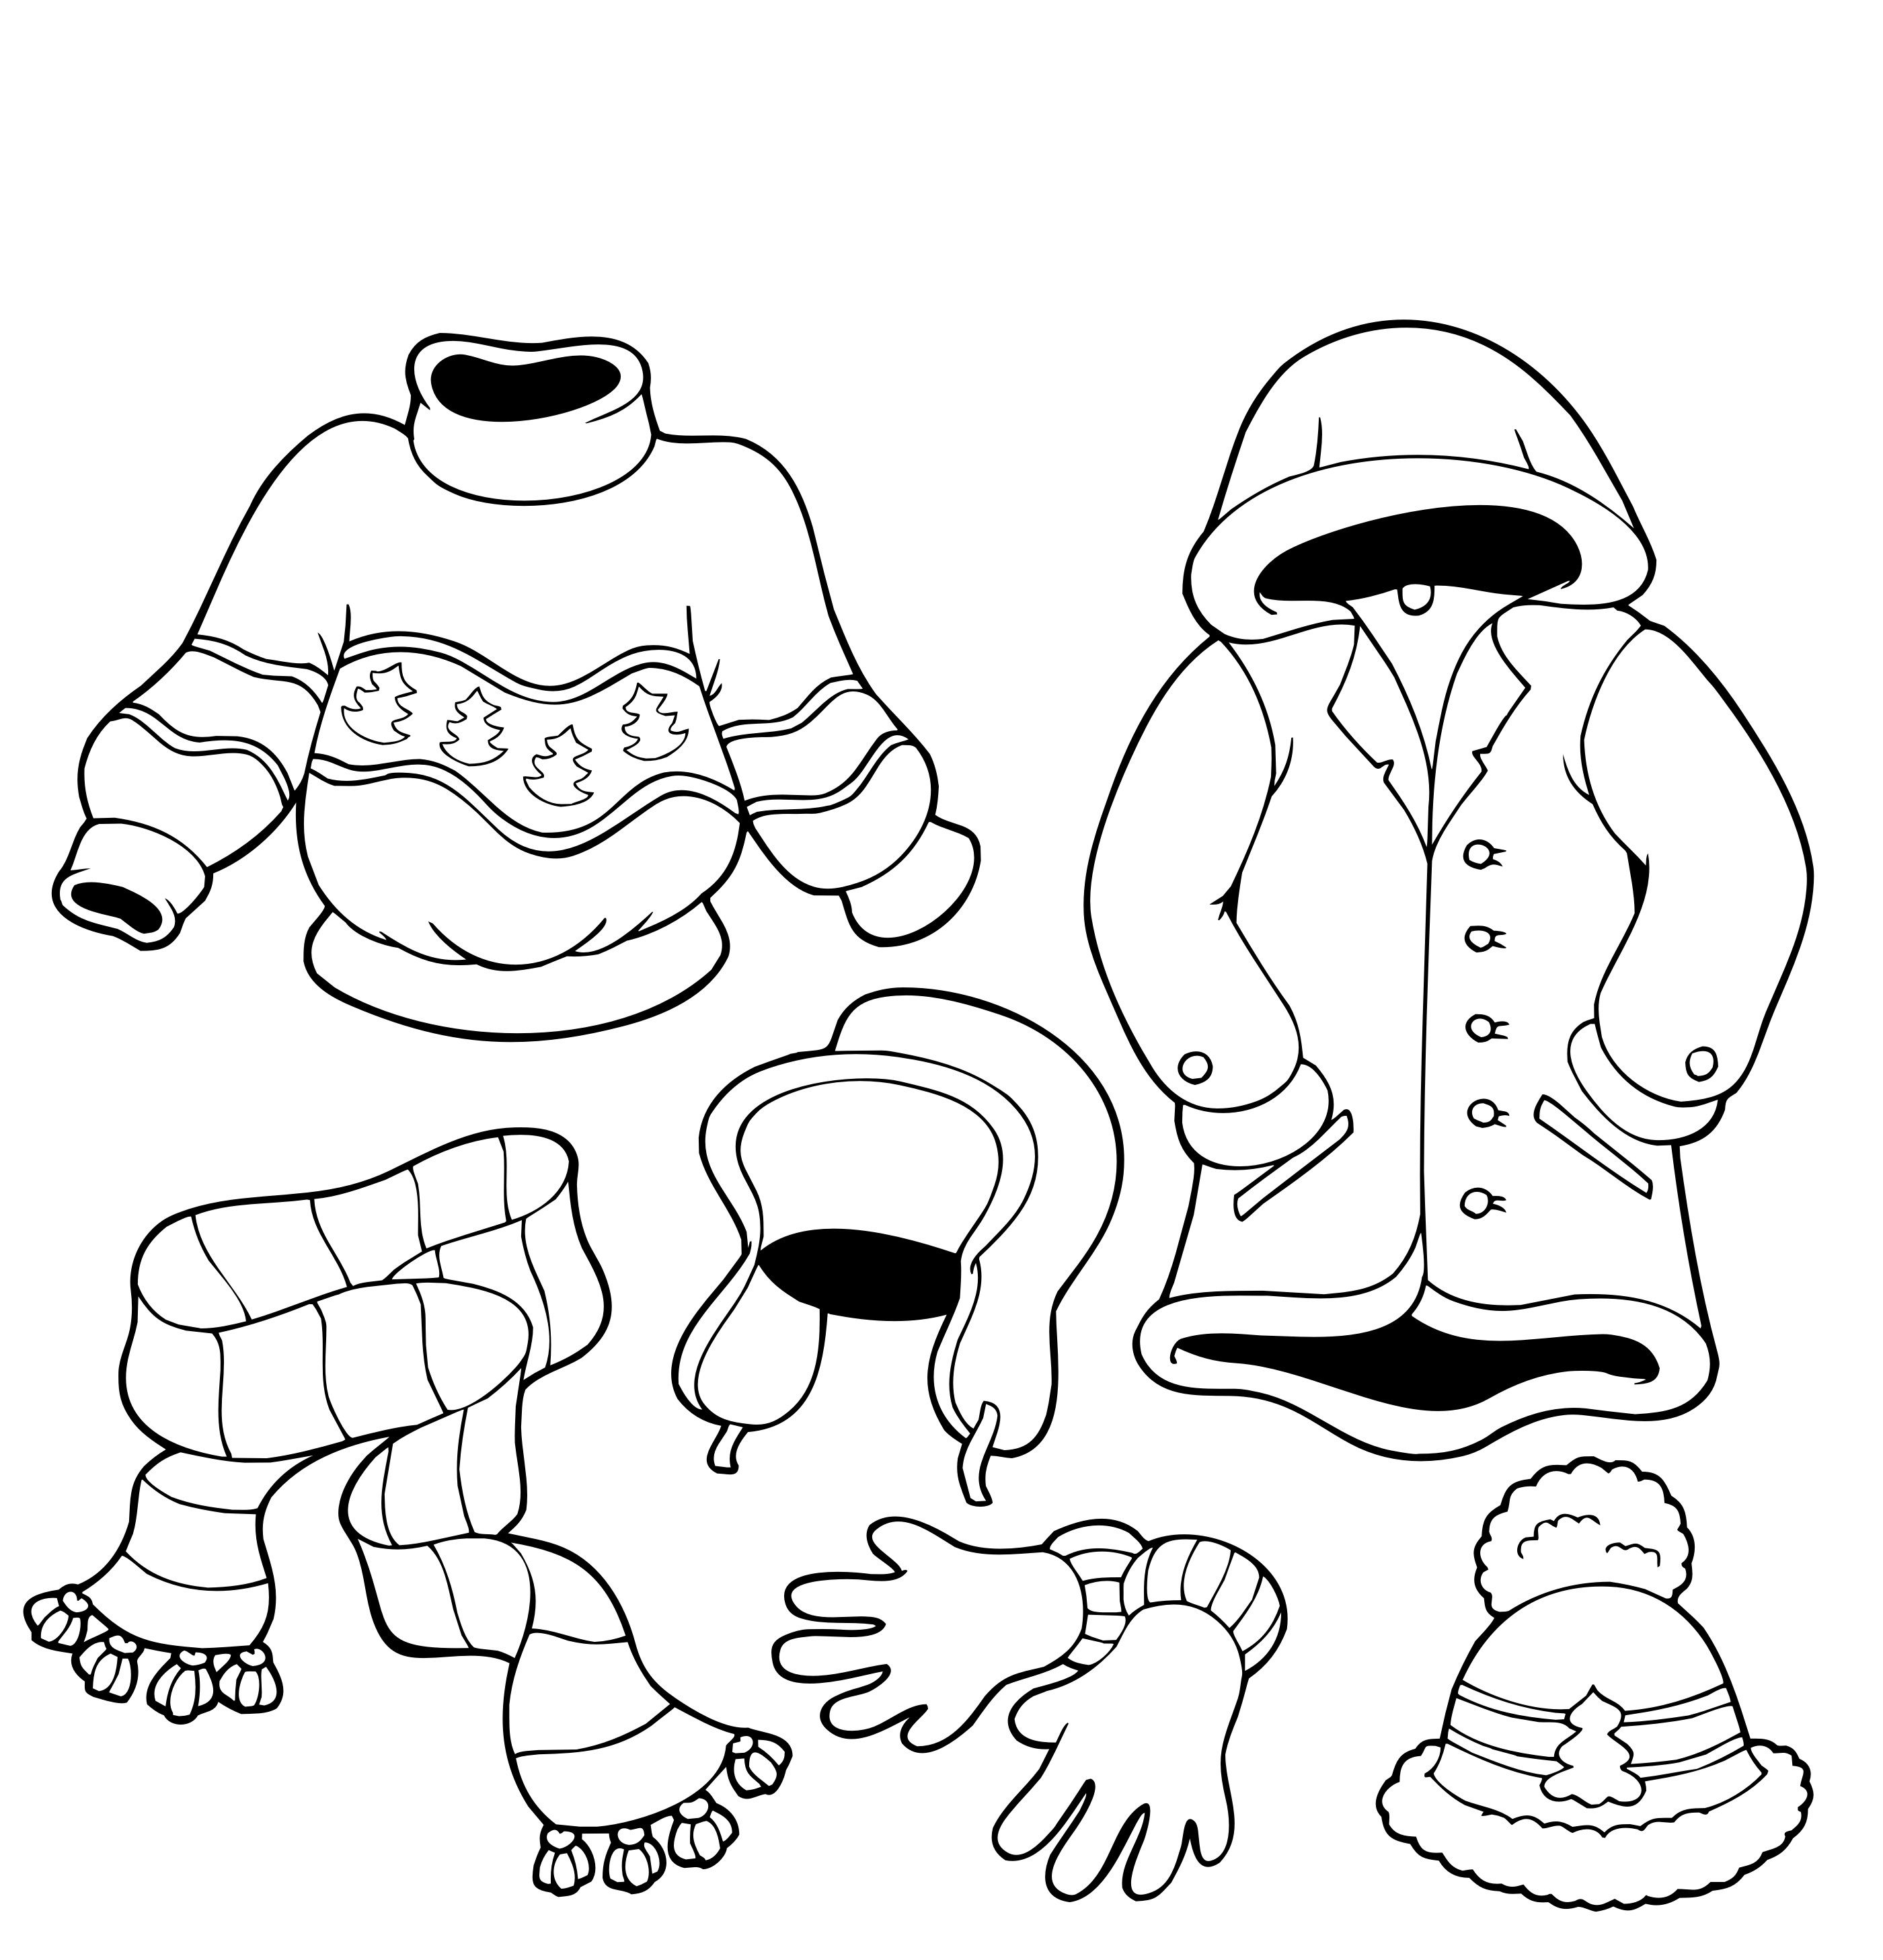 Free Printable Winter Coloring Pages For Kids coloringpages